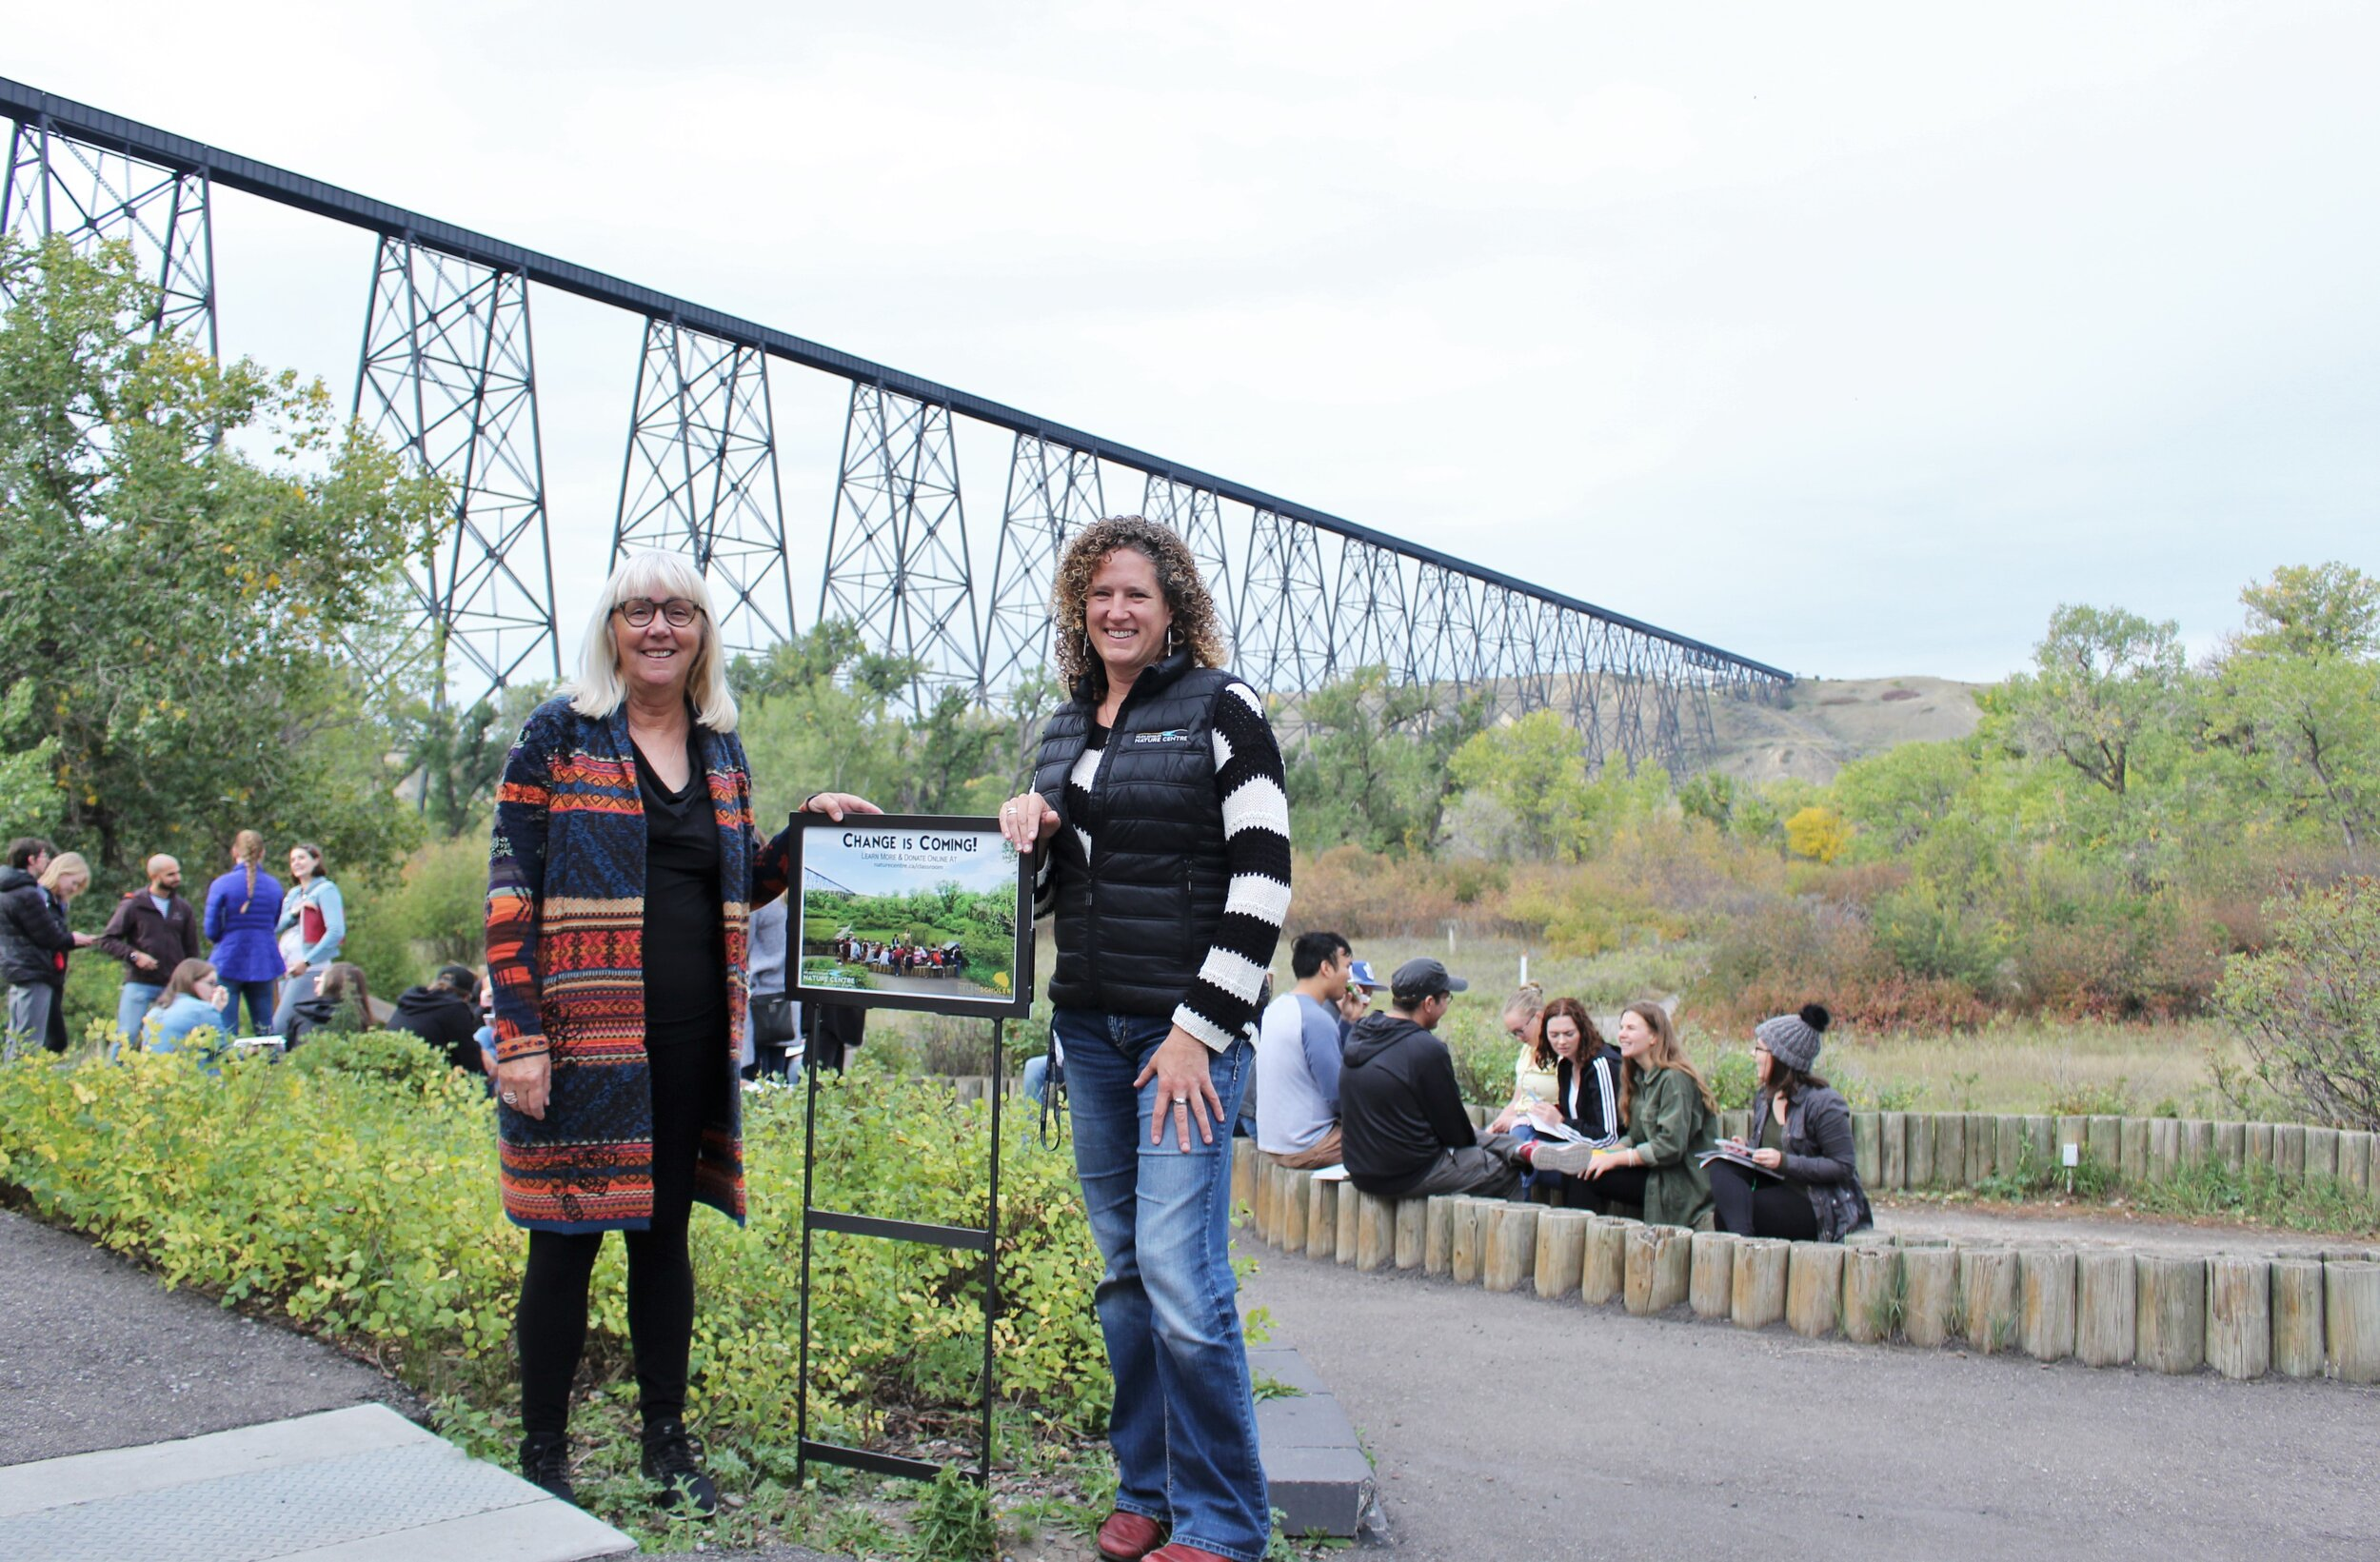 Carol Leriger and Coreen Putman pose for a 'Before' photo at the existing amphitheatre site at the Helen Schuler Nature Centre. September 2019.